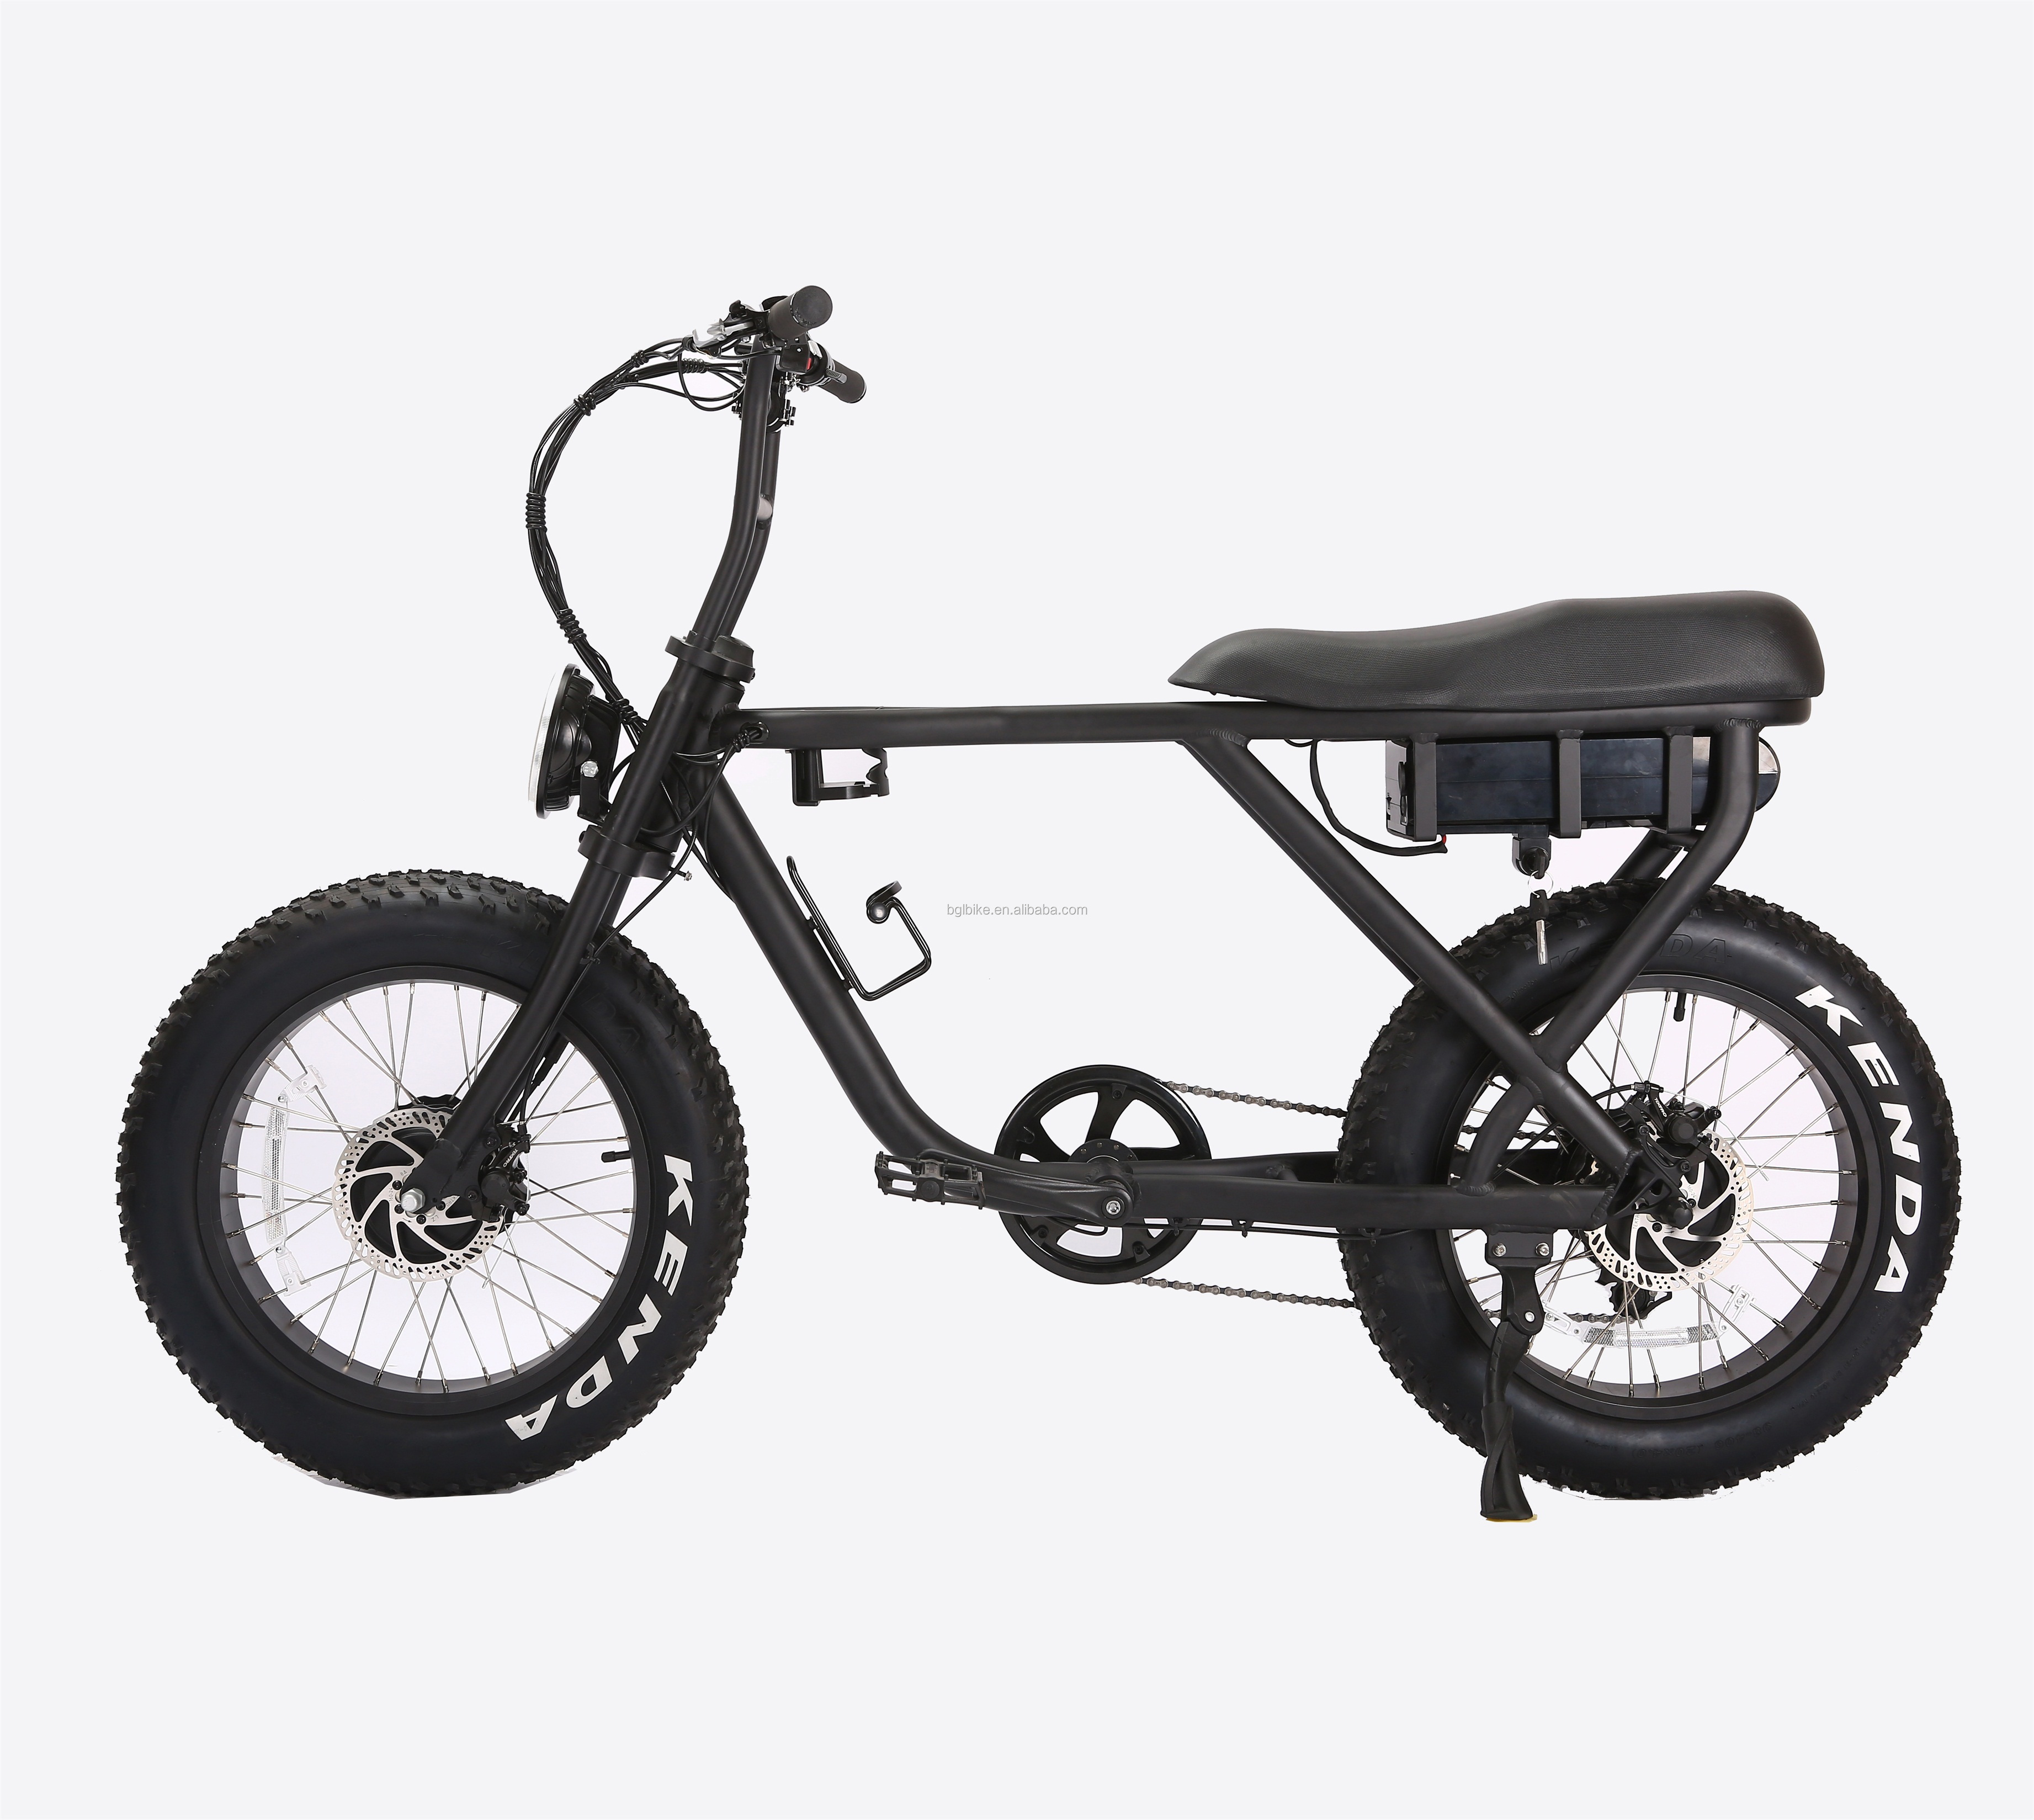 2018 most popular retro E <strong>bike</strong> fat /500W-1000W power motor with Samsung 48V13AH battery